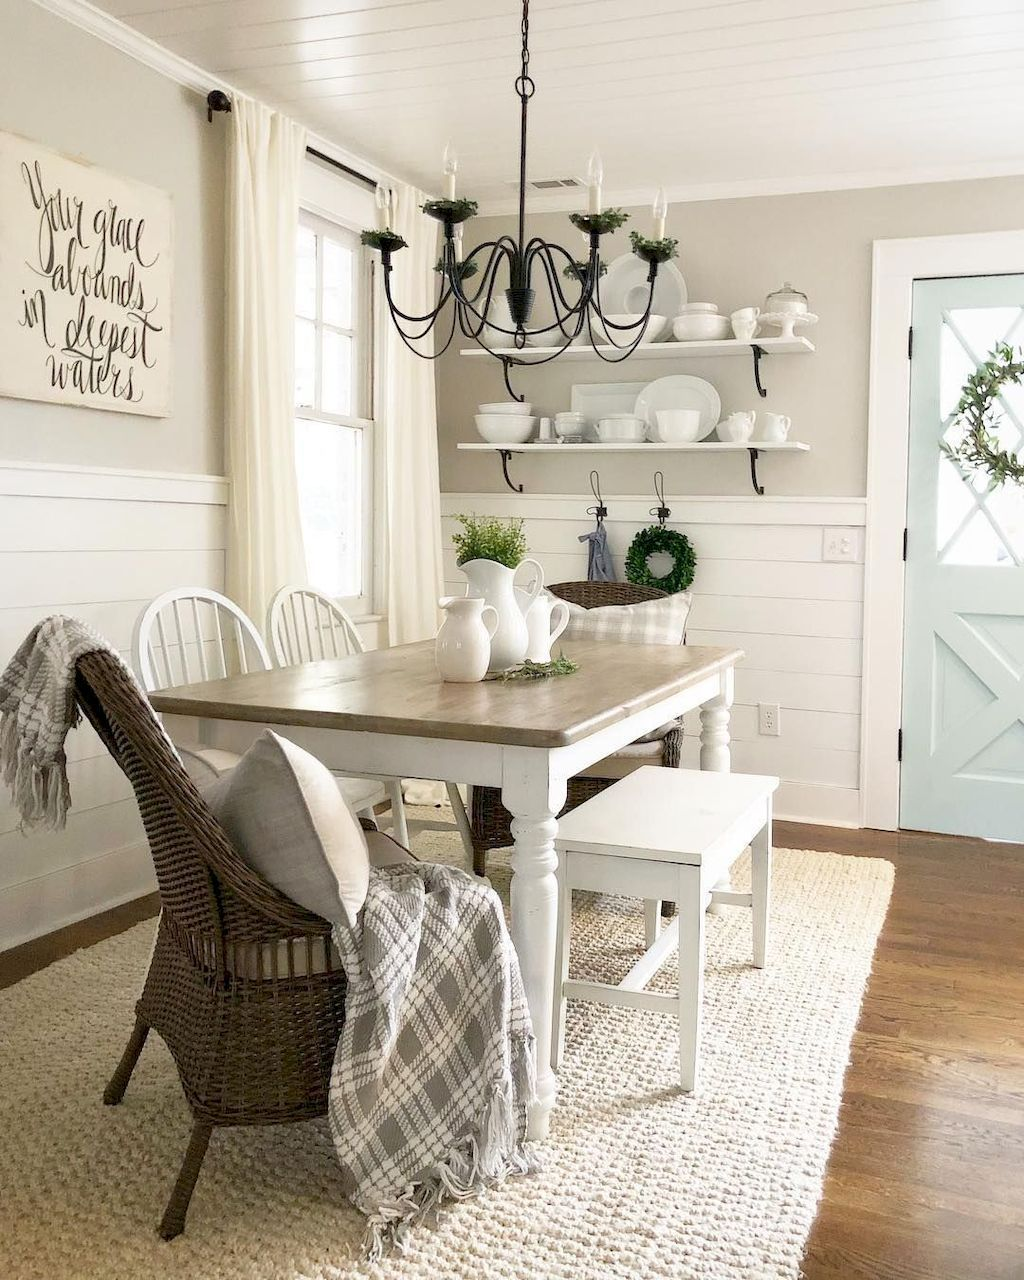 Farmhouse Dining Room Colors: 80+ STUNNING RUSTIC FARMHOUSE DINING ROOM SET FURNITURE